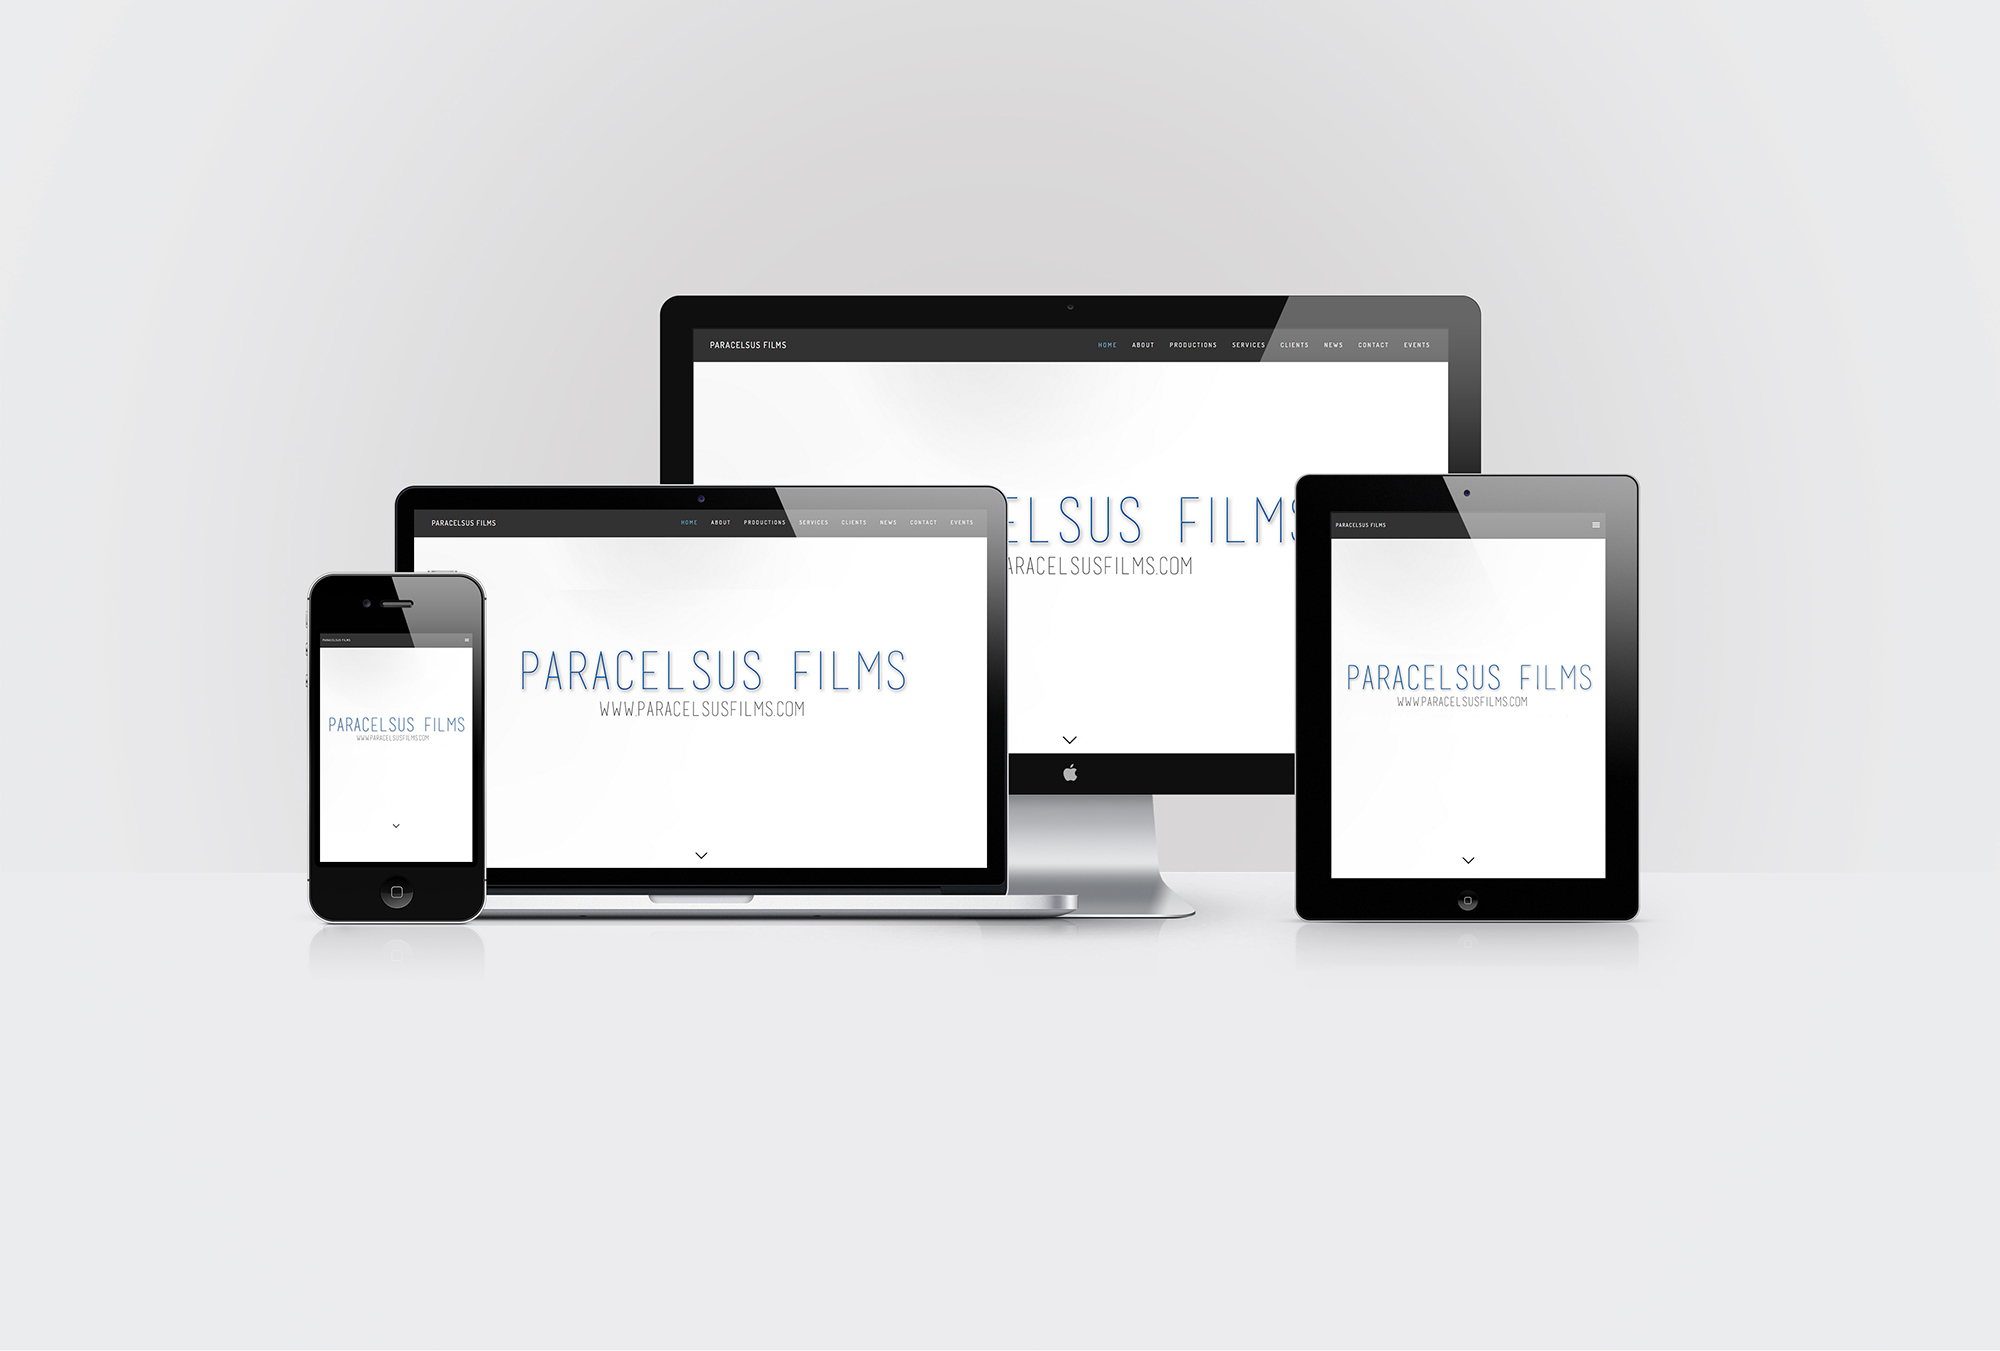 GeenaMatuson_DisplayMockup_ParacelsusFilms_Graphicon_Sm.jpg